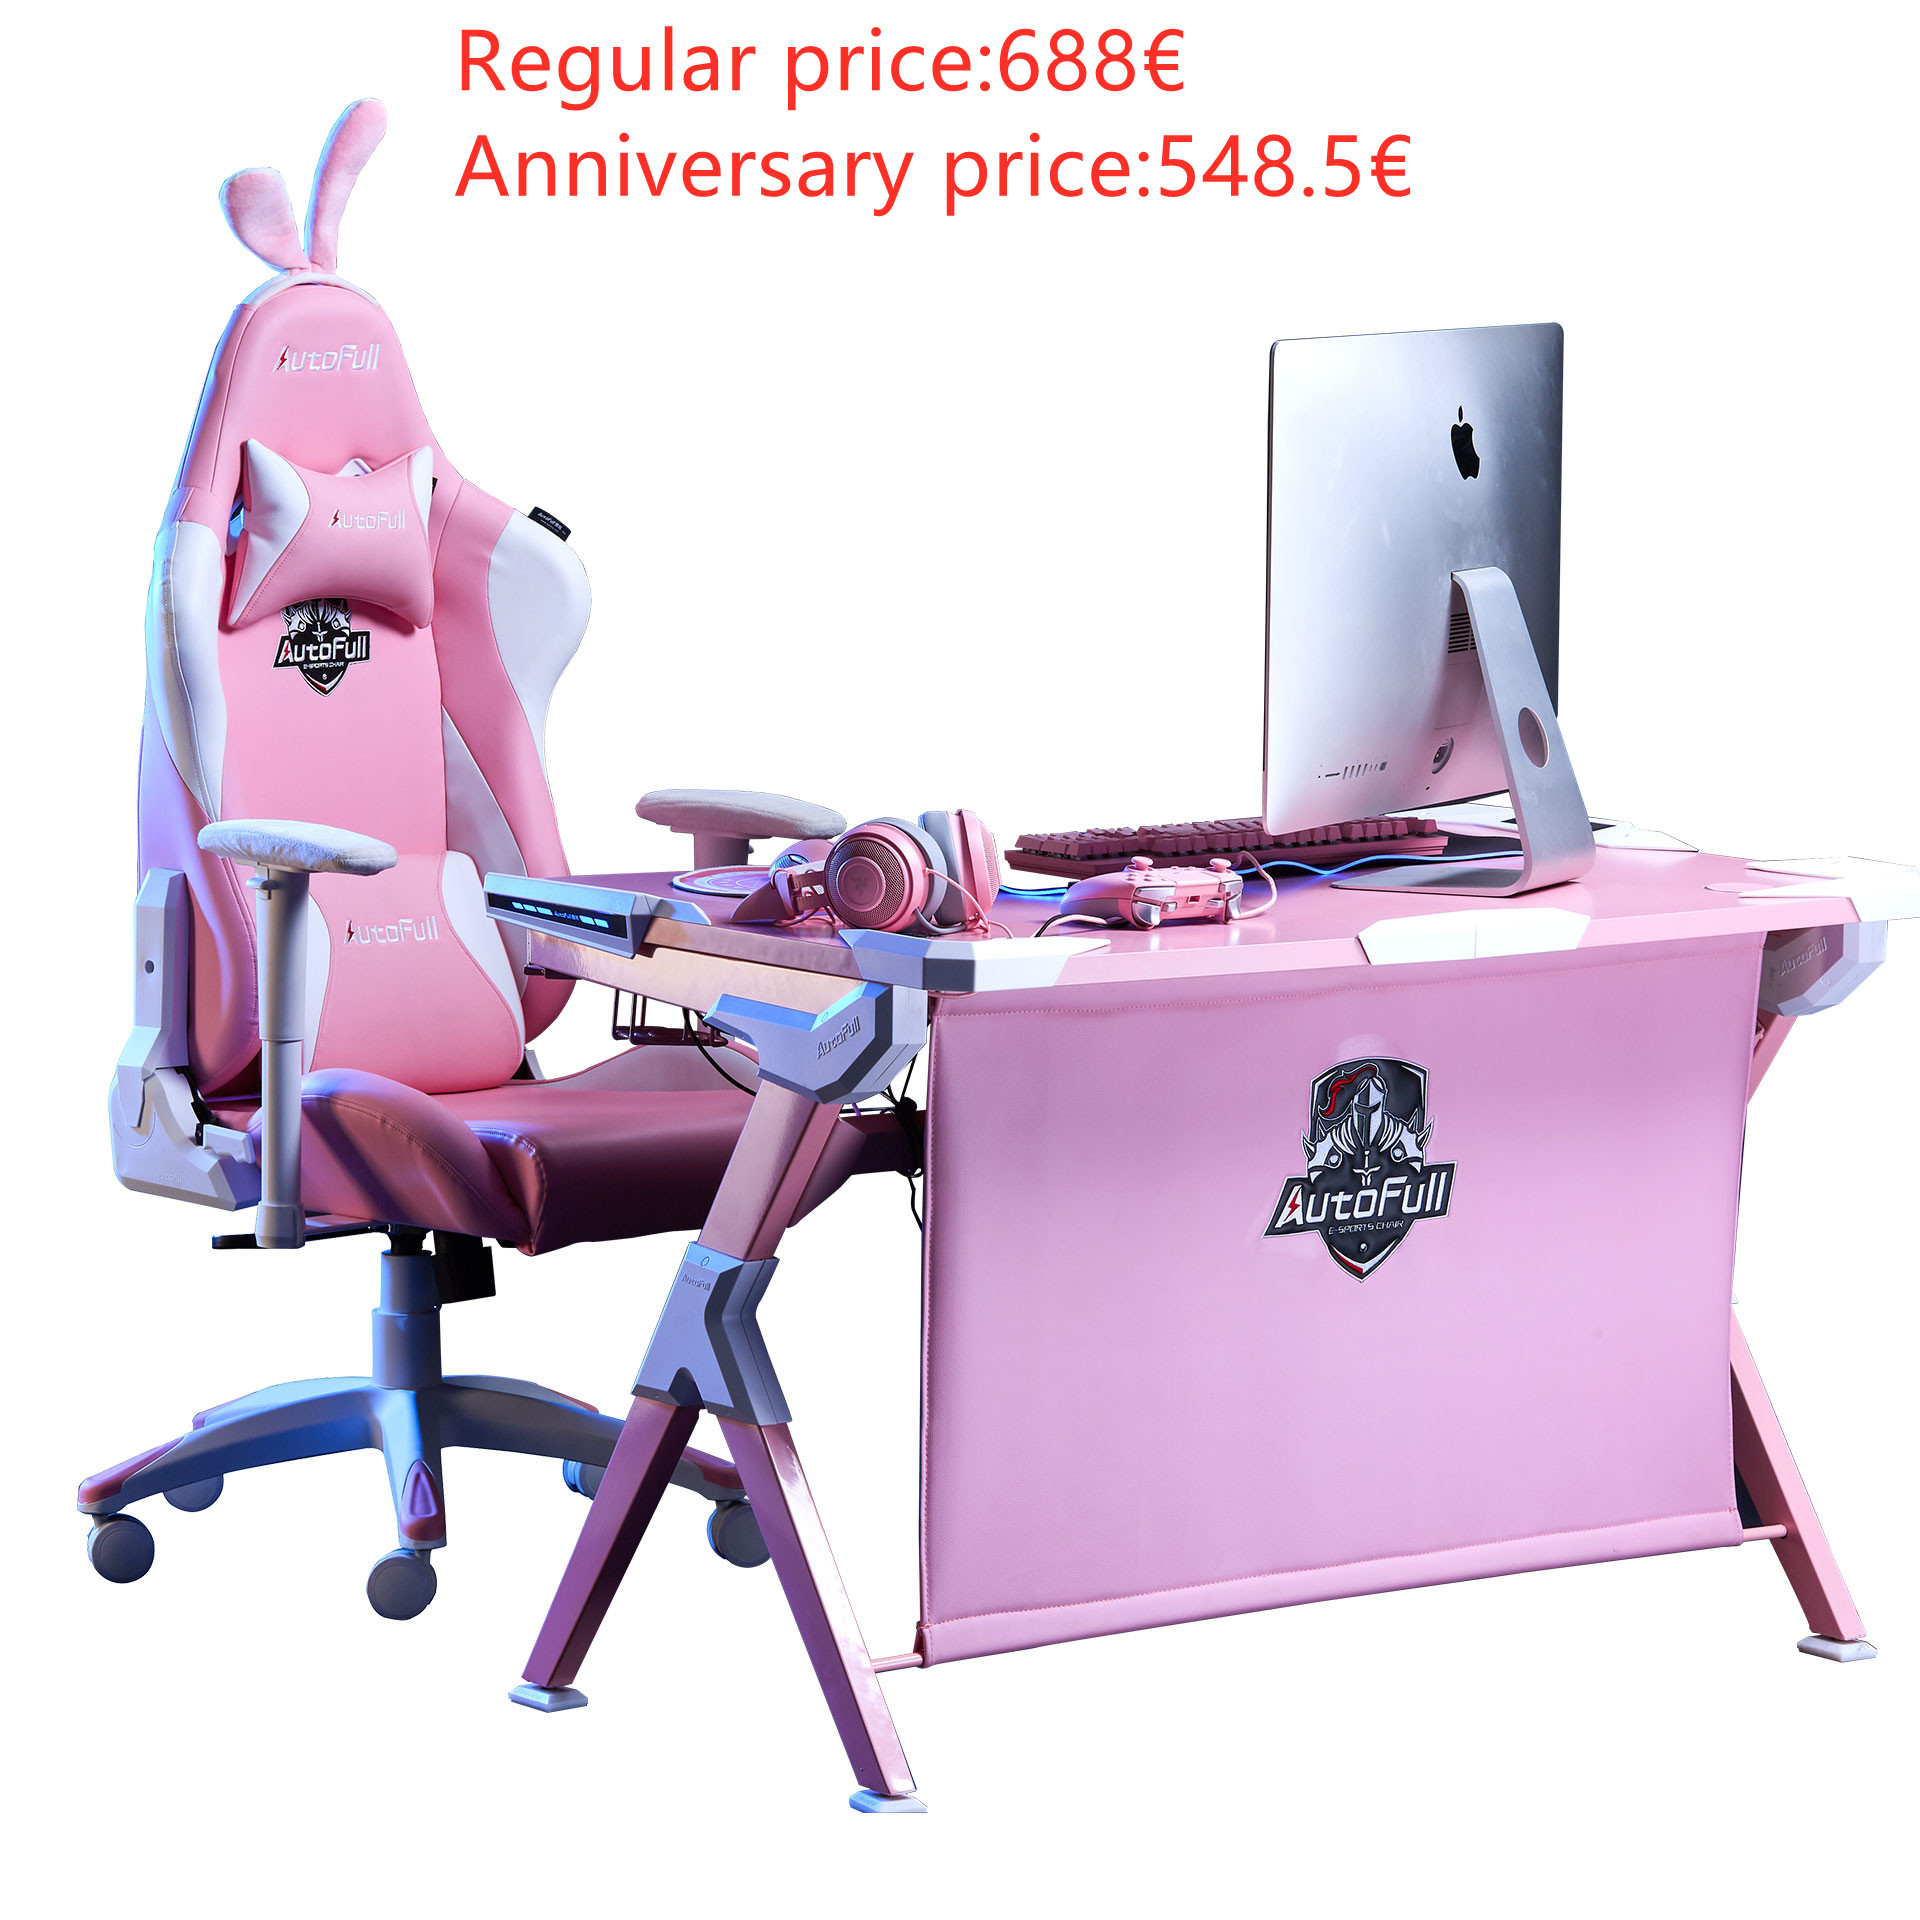 Autofull Cherry blossom snow gaming chair and desk Combo